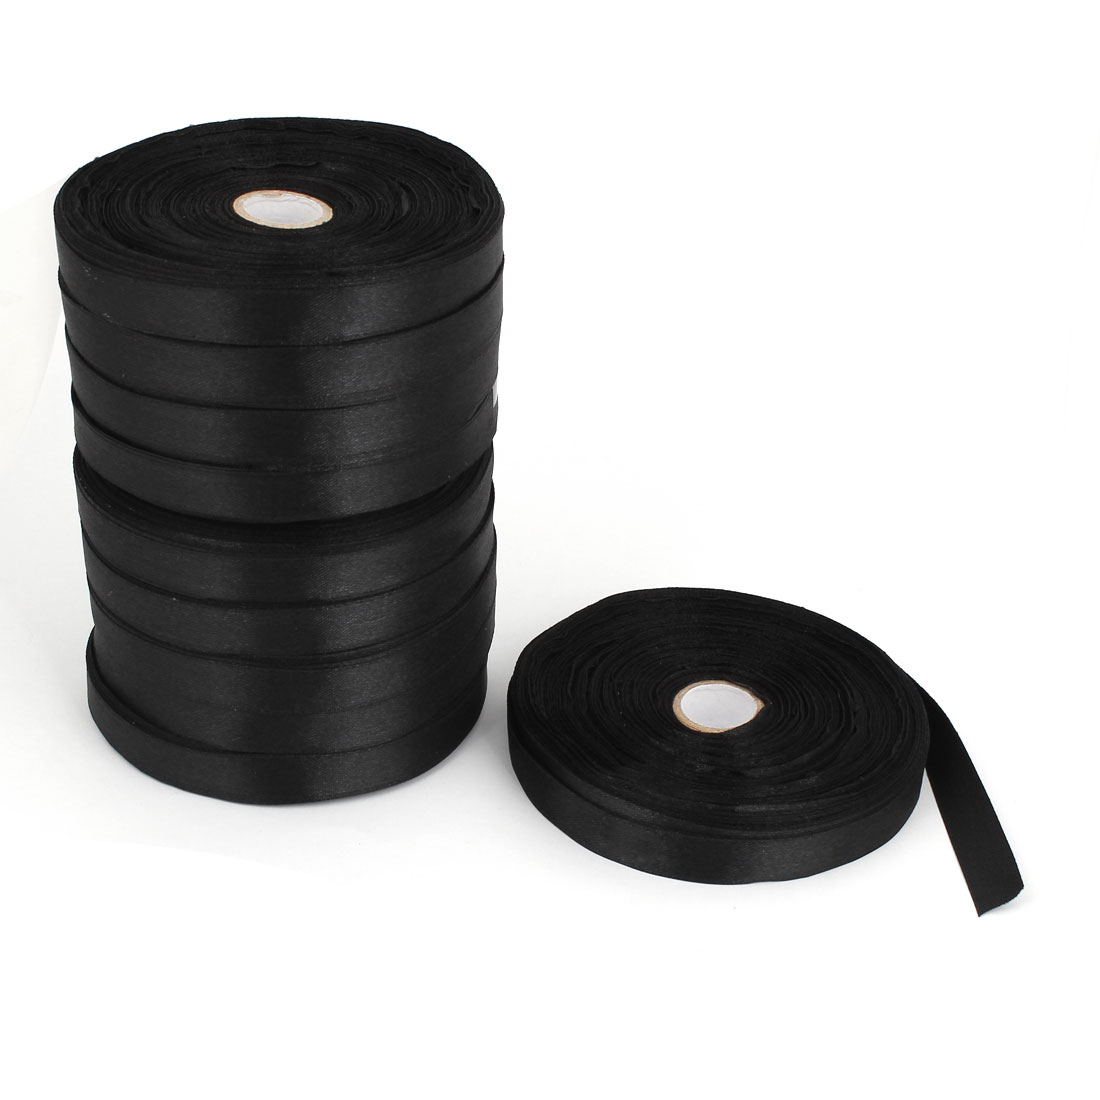 10 Pcs Black 1.3cm Width DIY Craft Wedding Party Sewing Decor Ribbon Roll Tape 500 Yard 457M